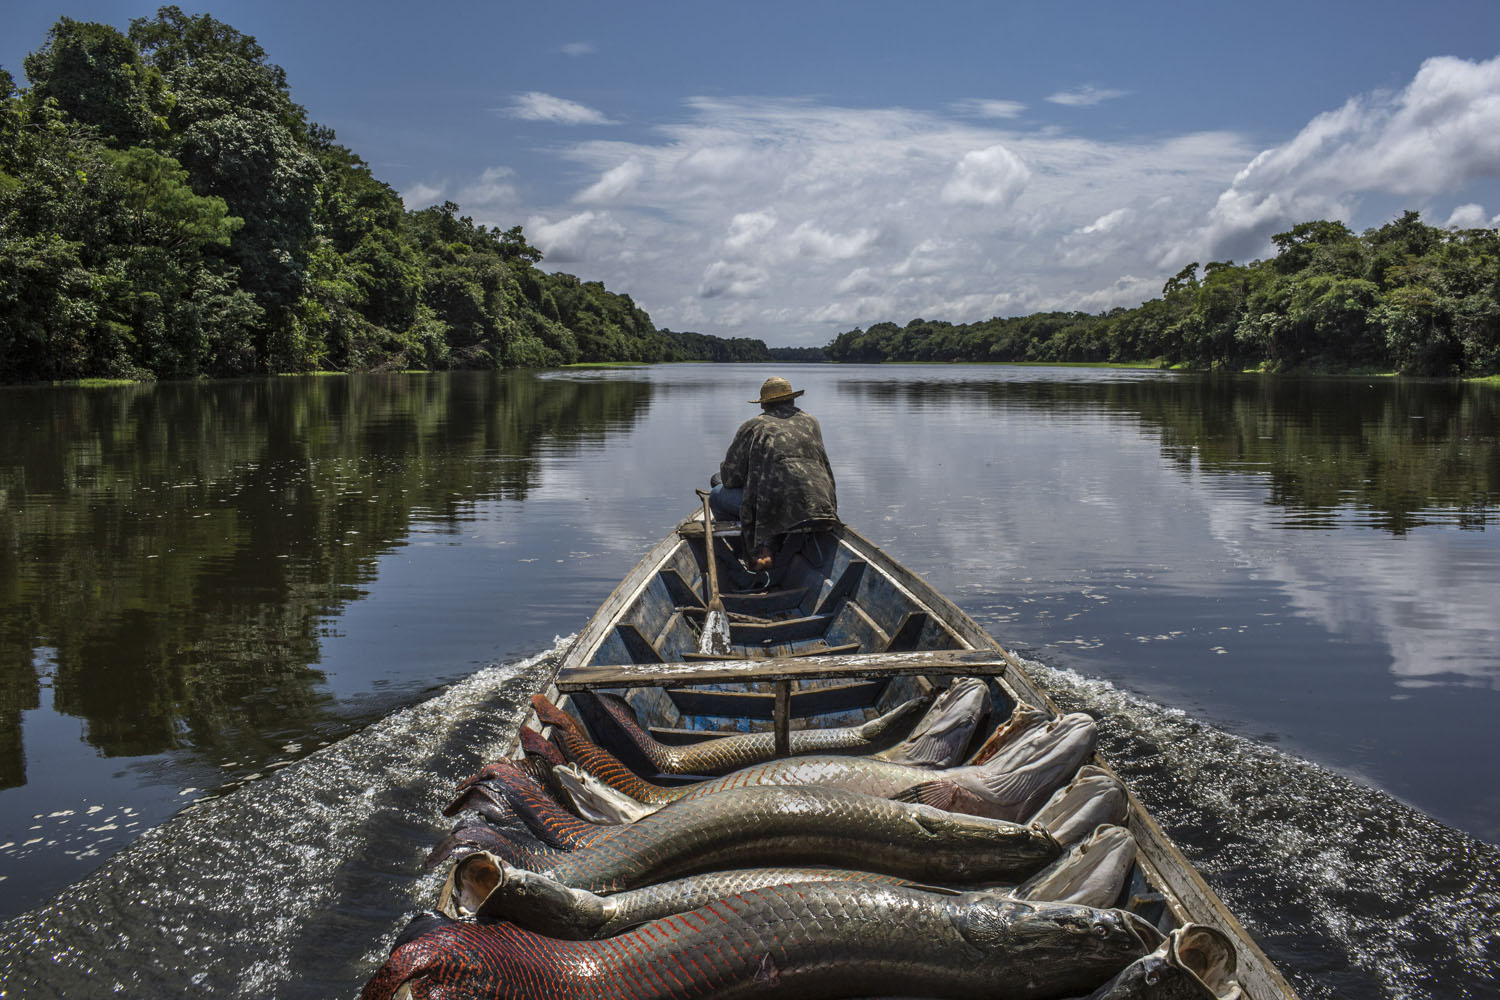 The New York Times: The Fishing for a Goliath of the River in the Amazon                     A fisherman guides his canoe laden with pirarucu out of Lago do Macaco, or Monkey's Lake, in Brazil's Amazonas region, Oct. 28, 2014.